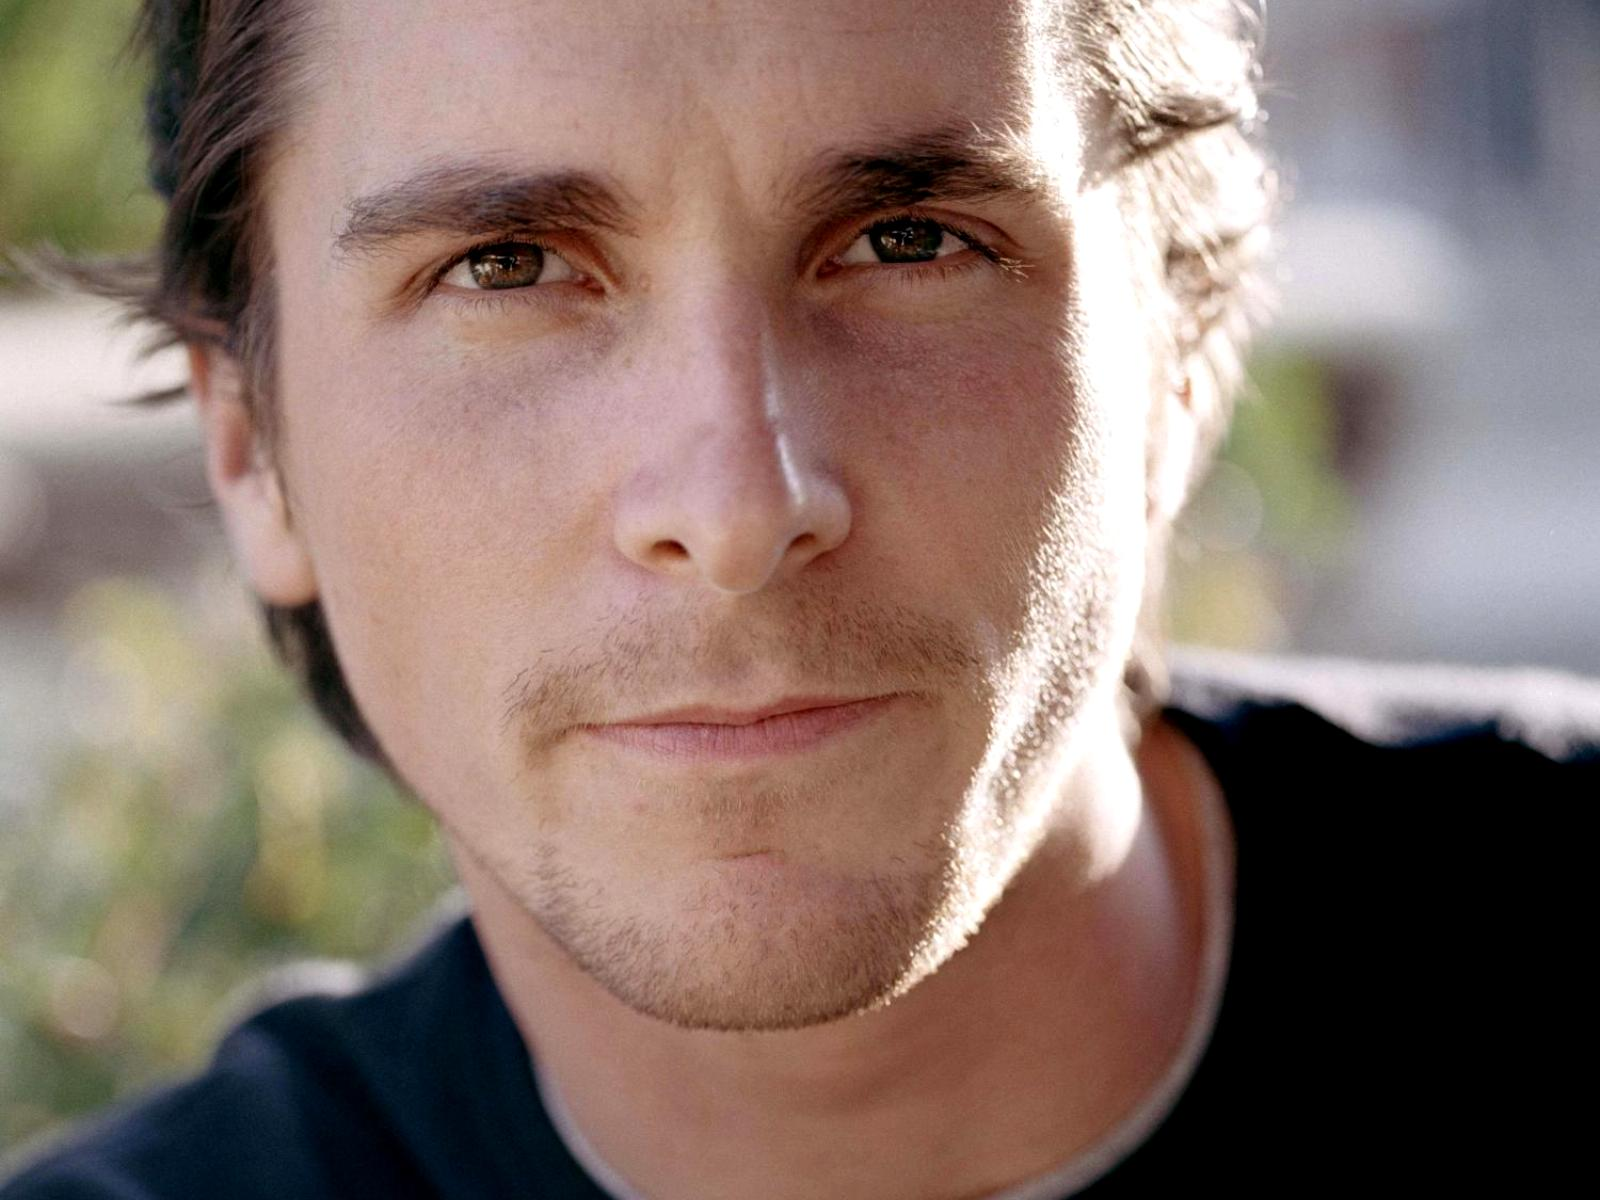 Christian Bale - Actor